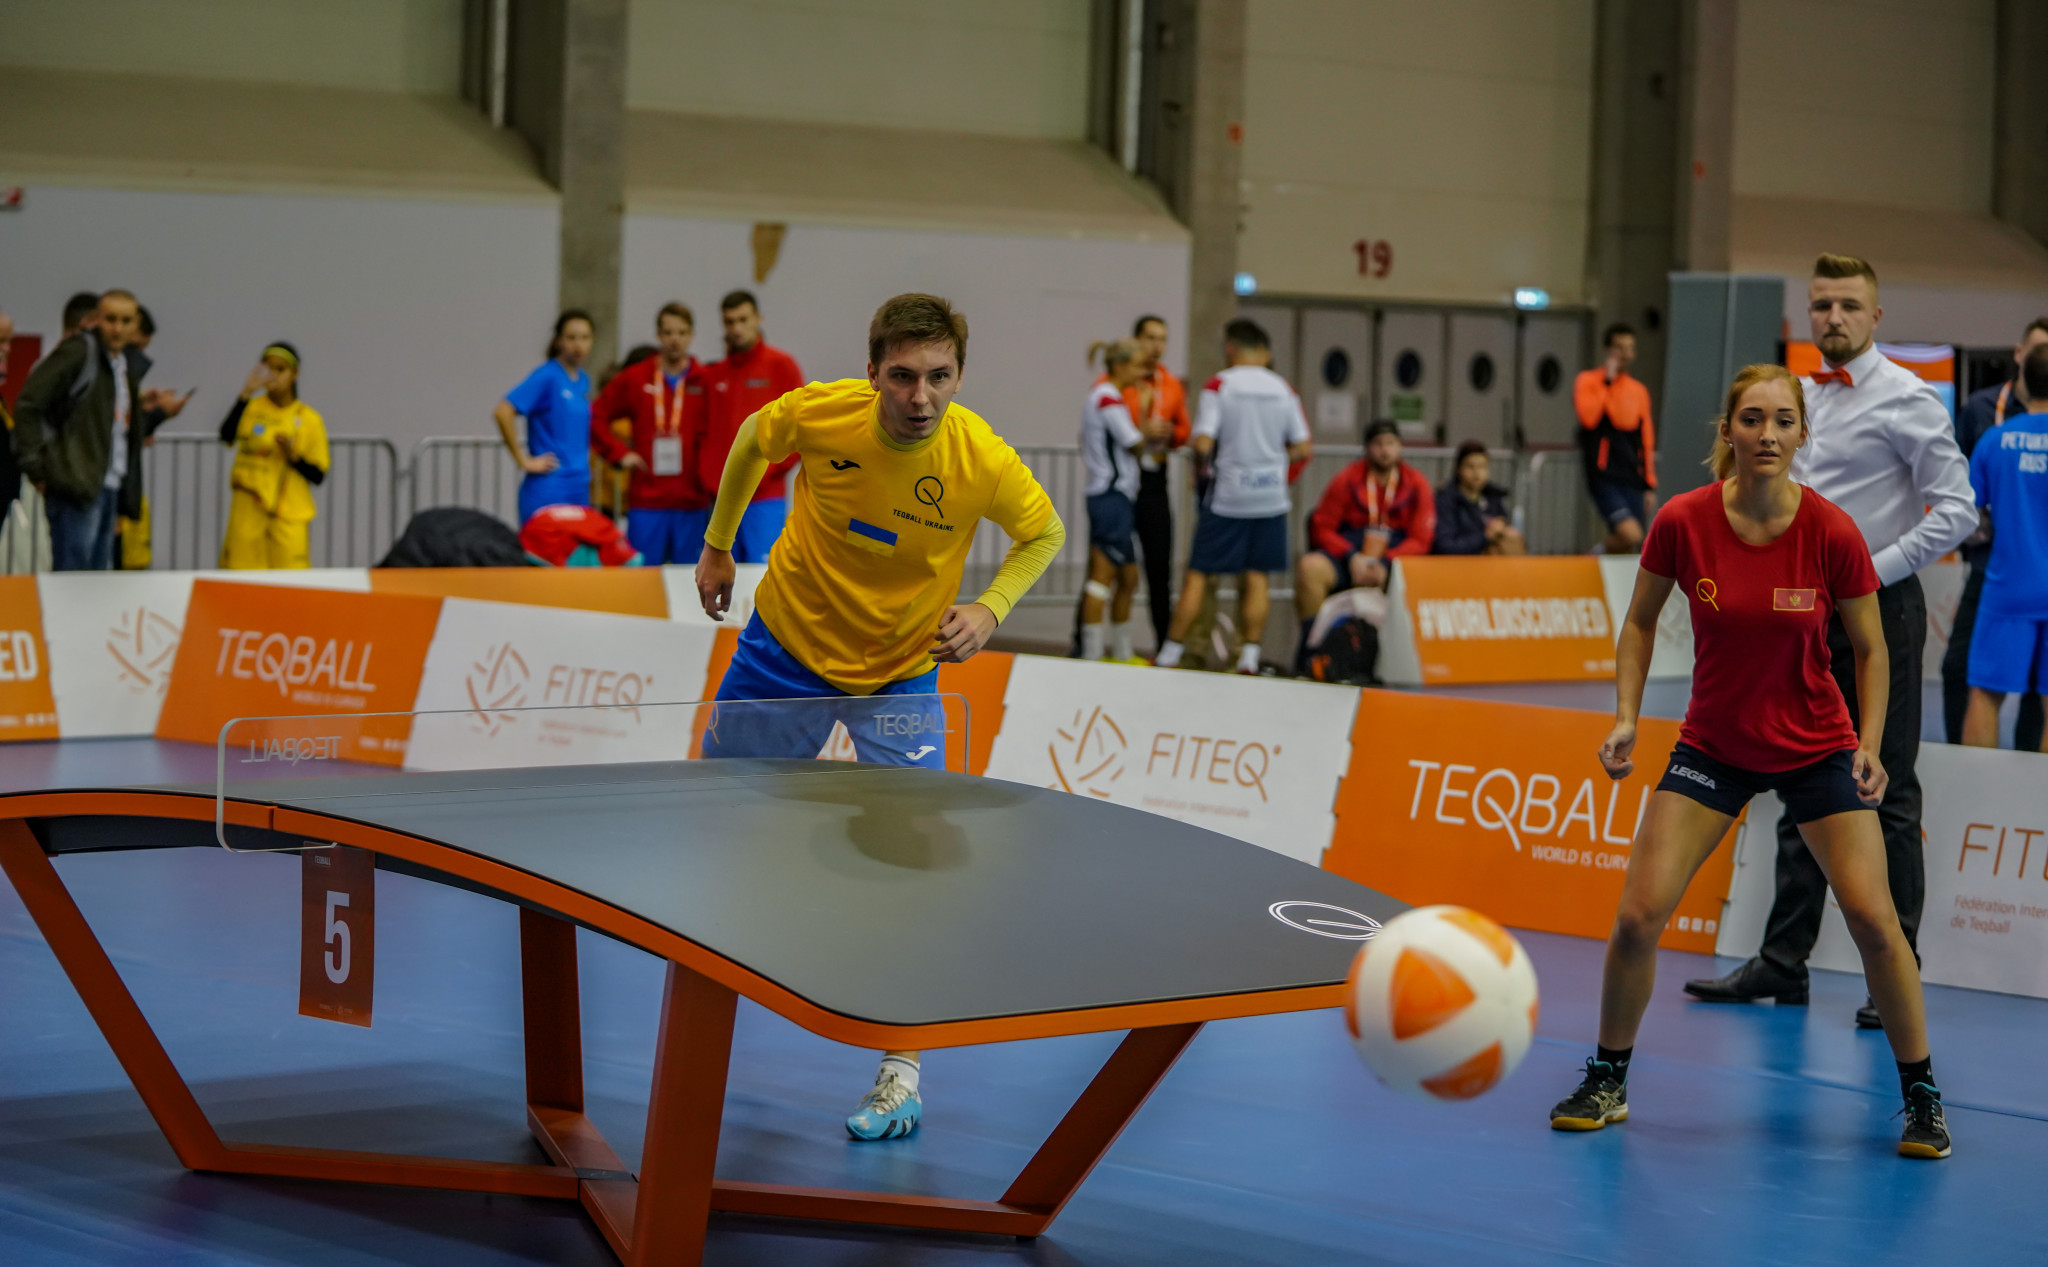 Teqball is an extremely inclusive game, with men and women often pitted against eachother ©FITEQ